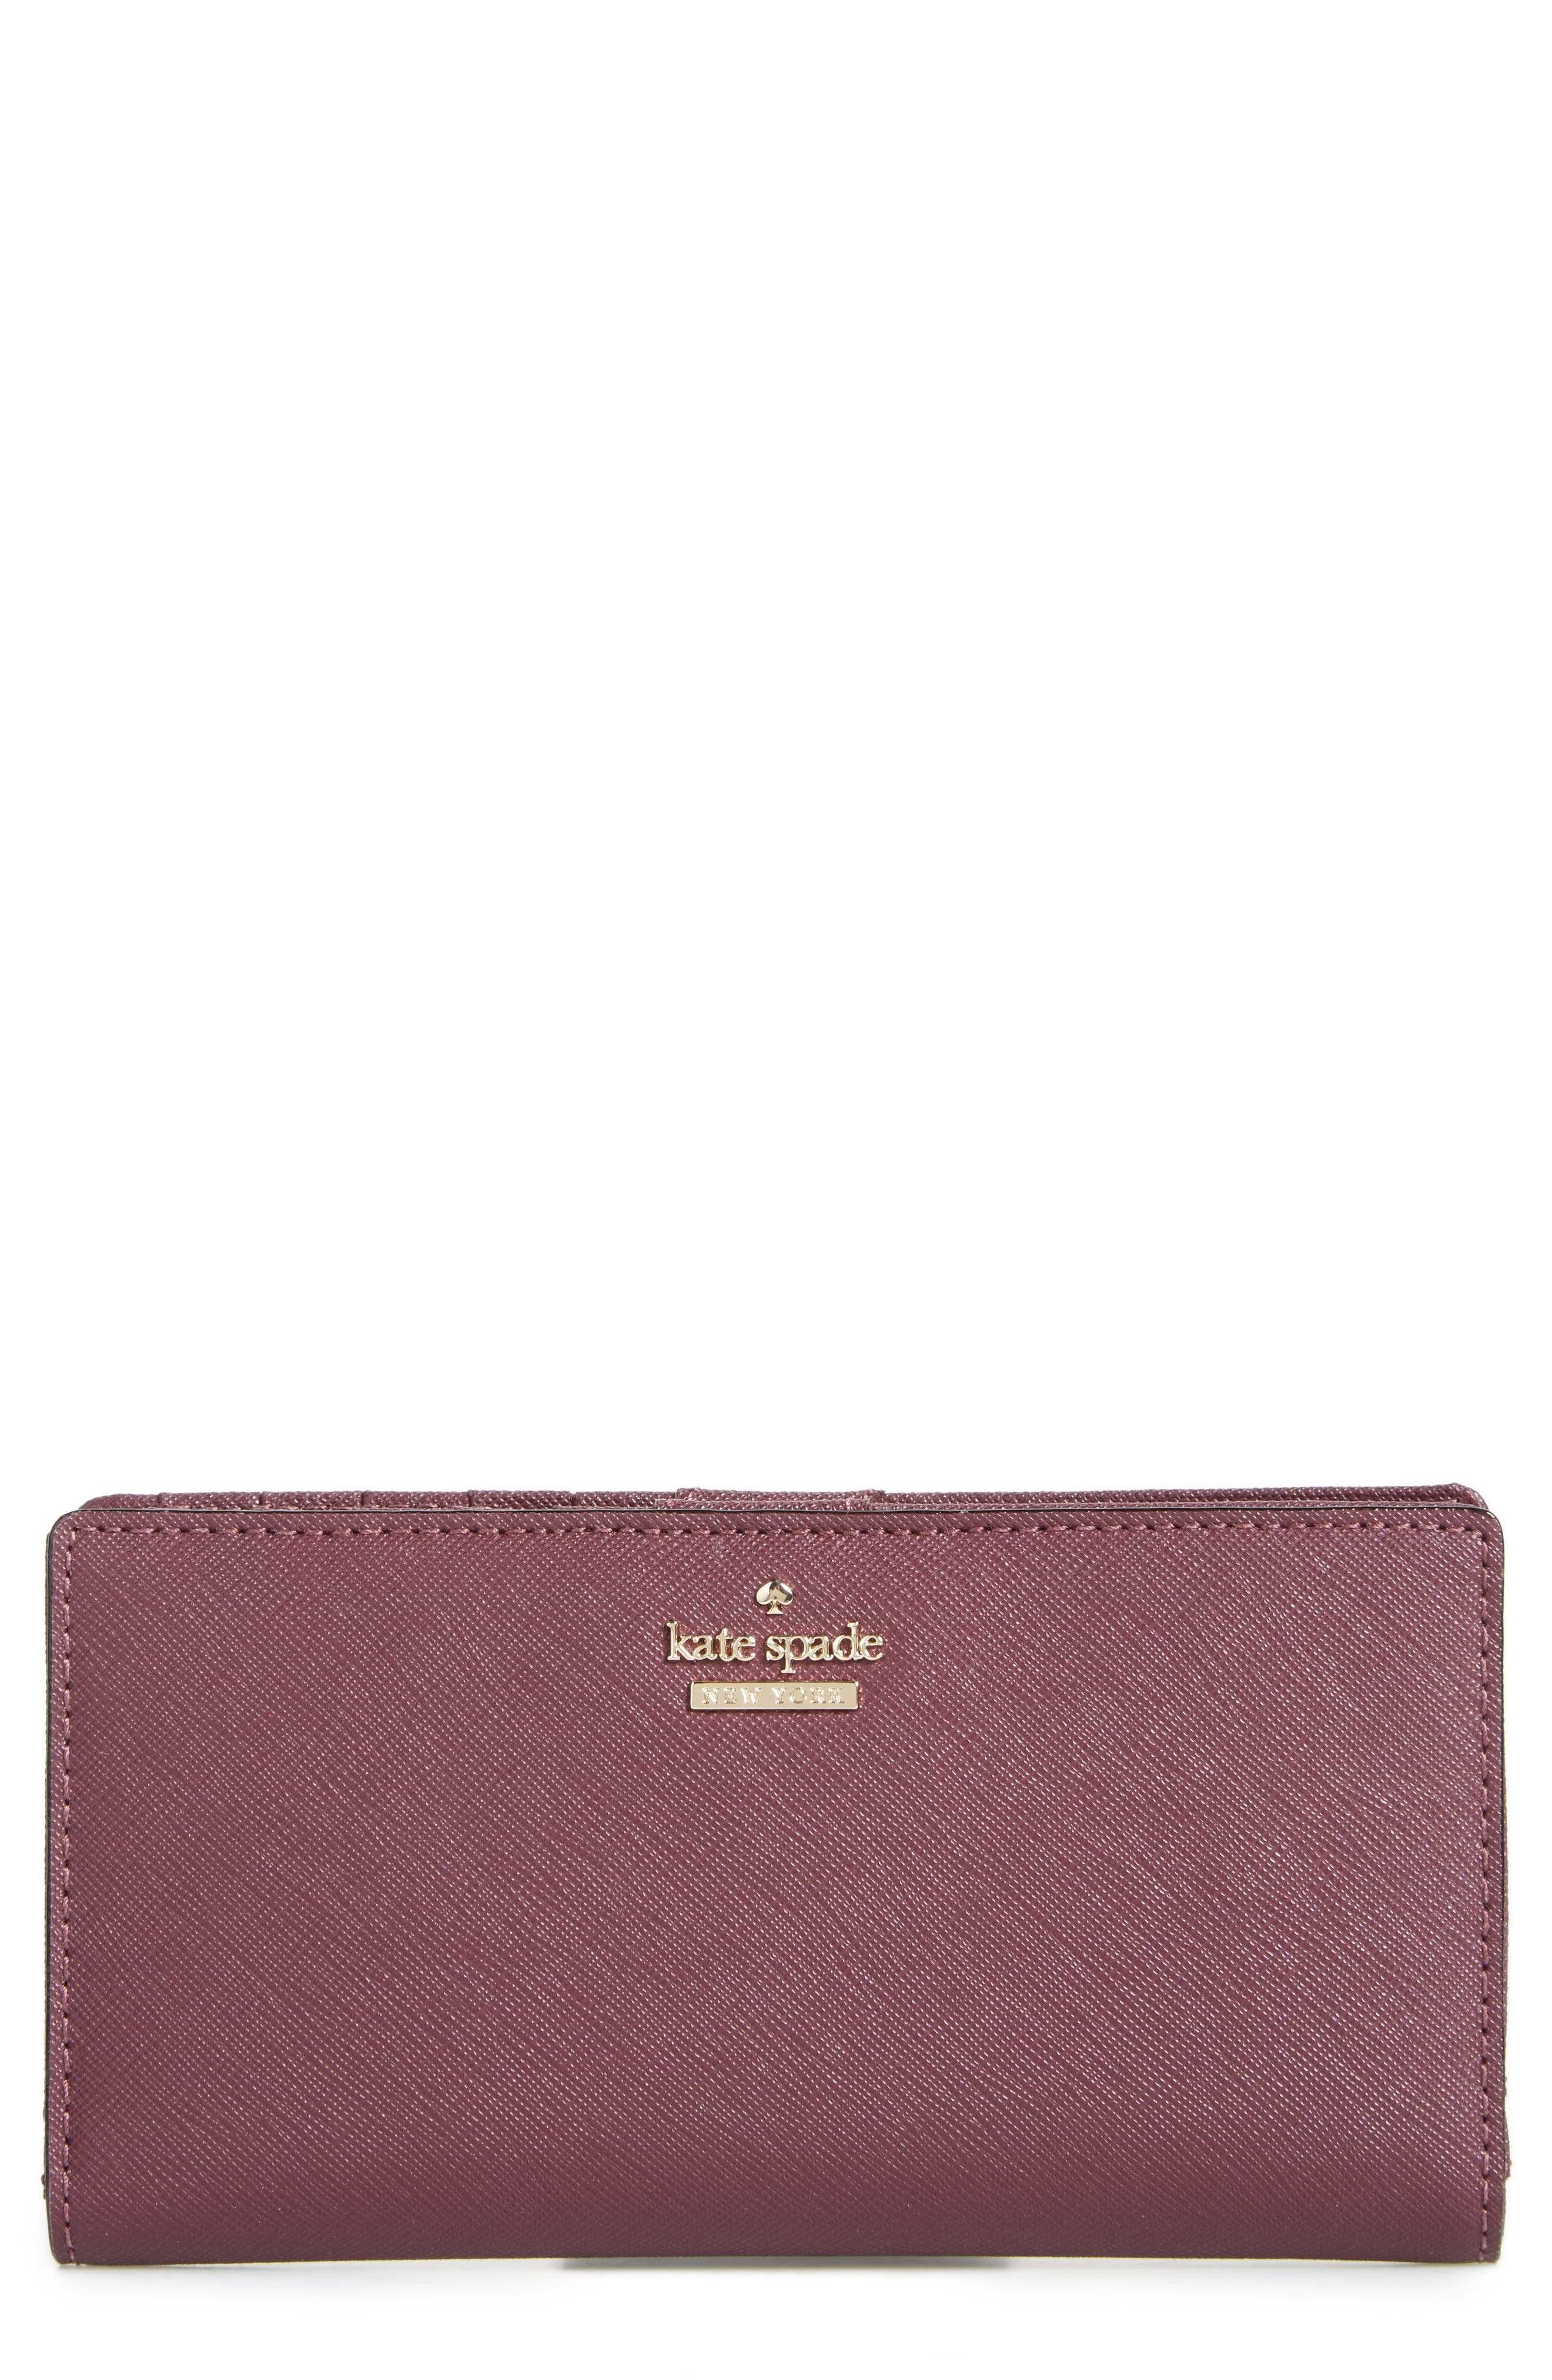 Main Image - kate spade new york 'cameron street - stacy' textured leather wallet